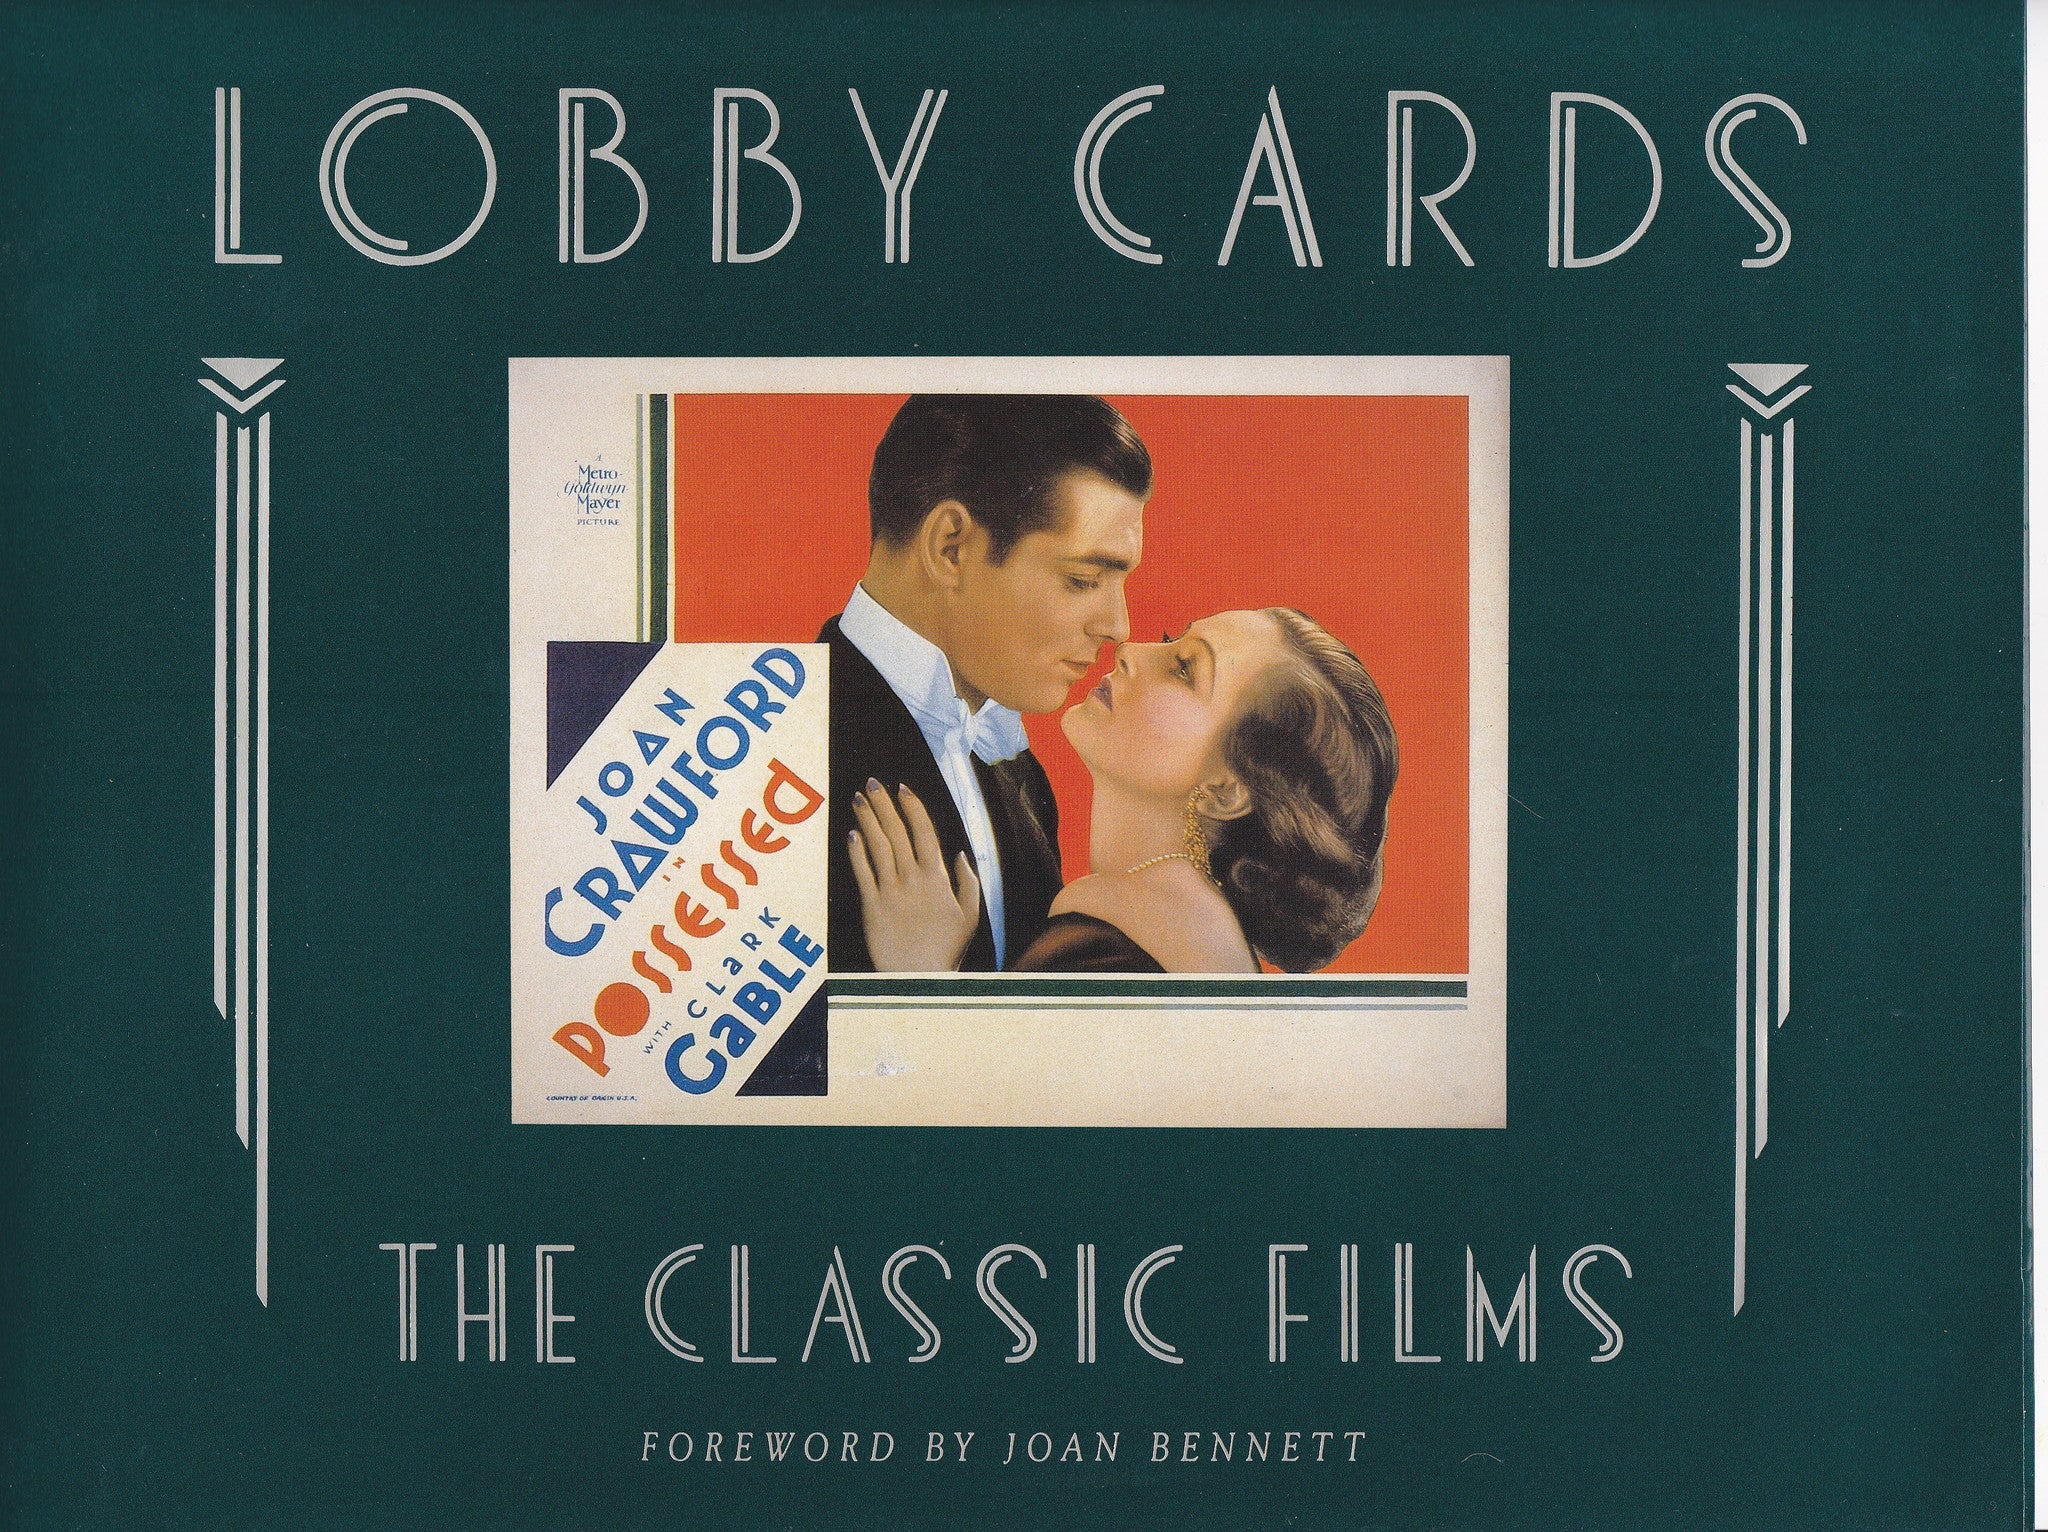 Lobby Cards: The Classic Films